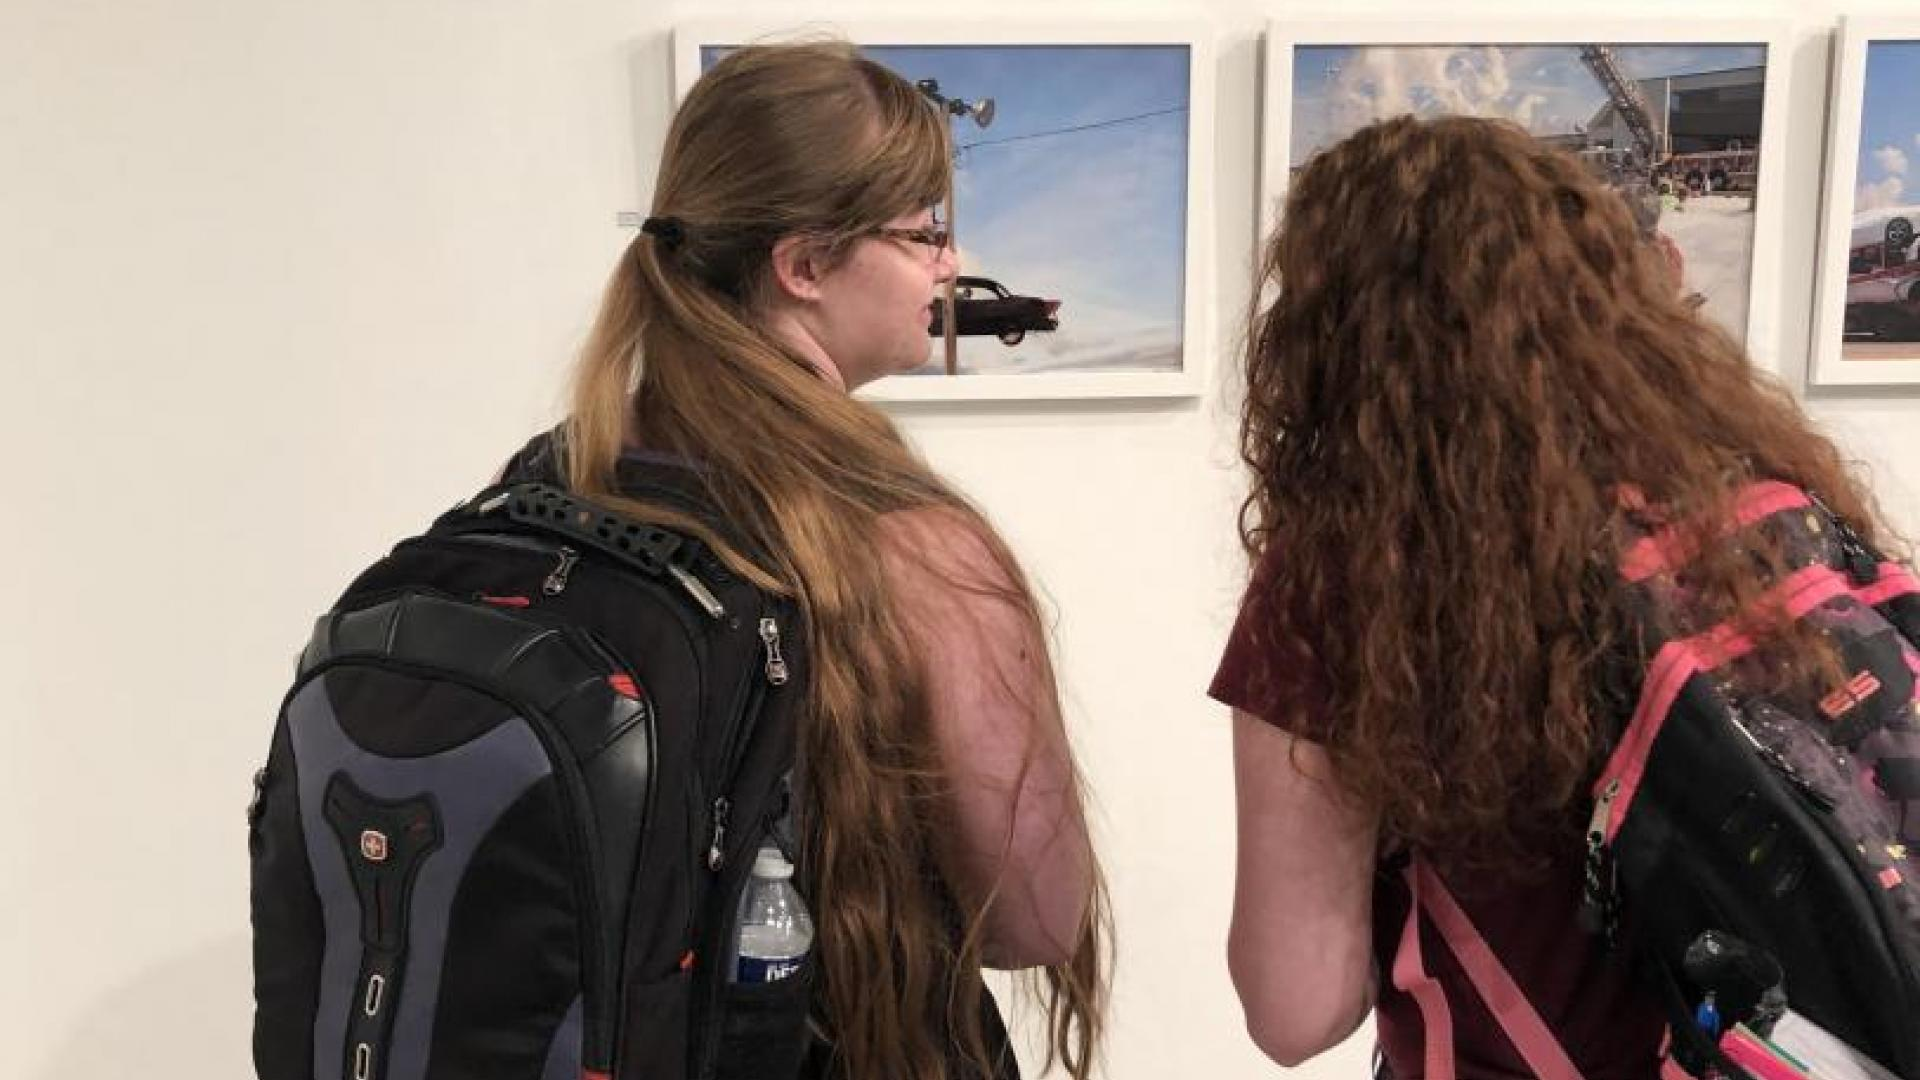 Students Look at Photography in Wilson Gallery